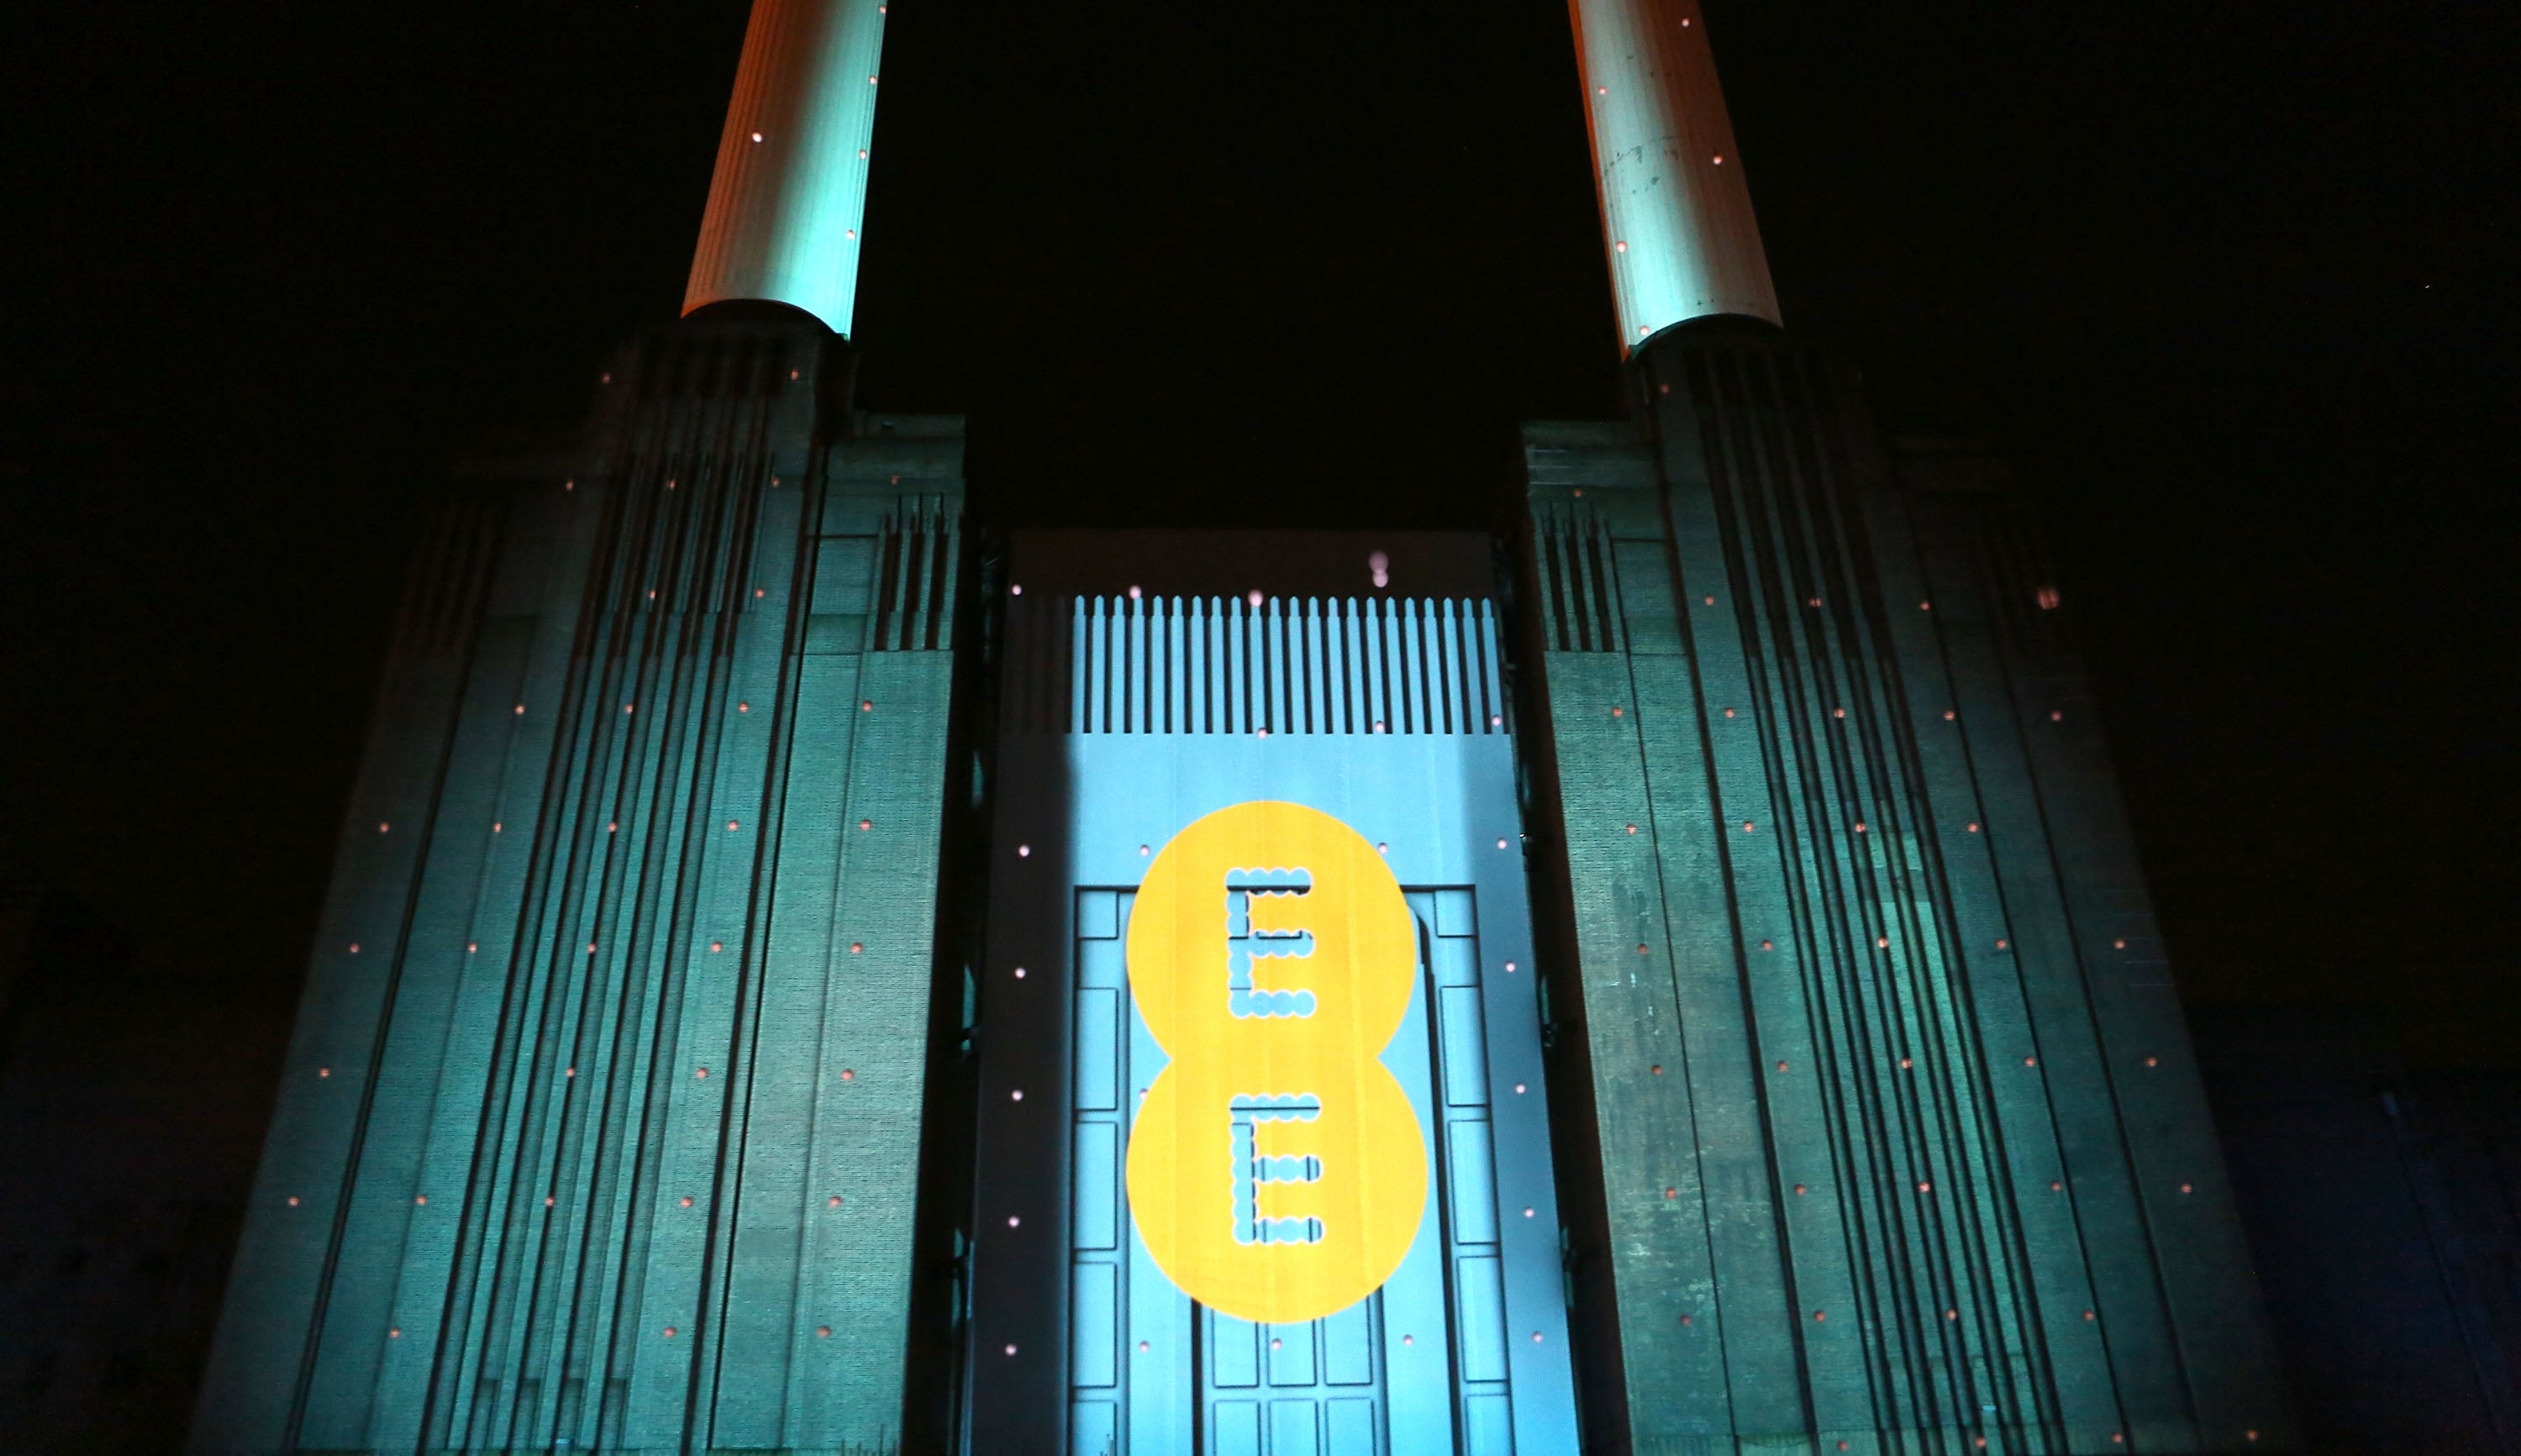 EE is 'UK's best mobile network', followed by Three and O2 - with Vodafone coming last